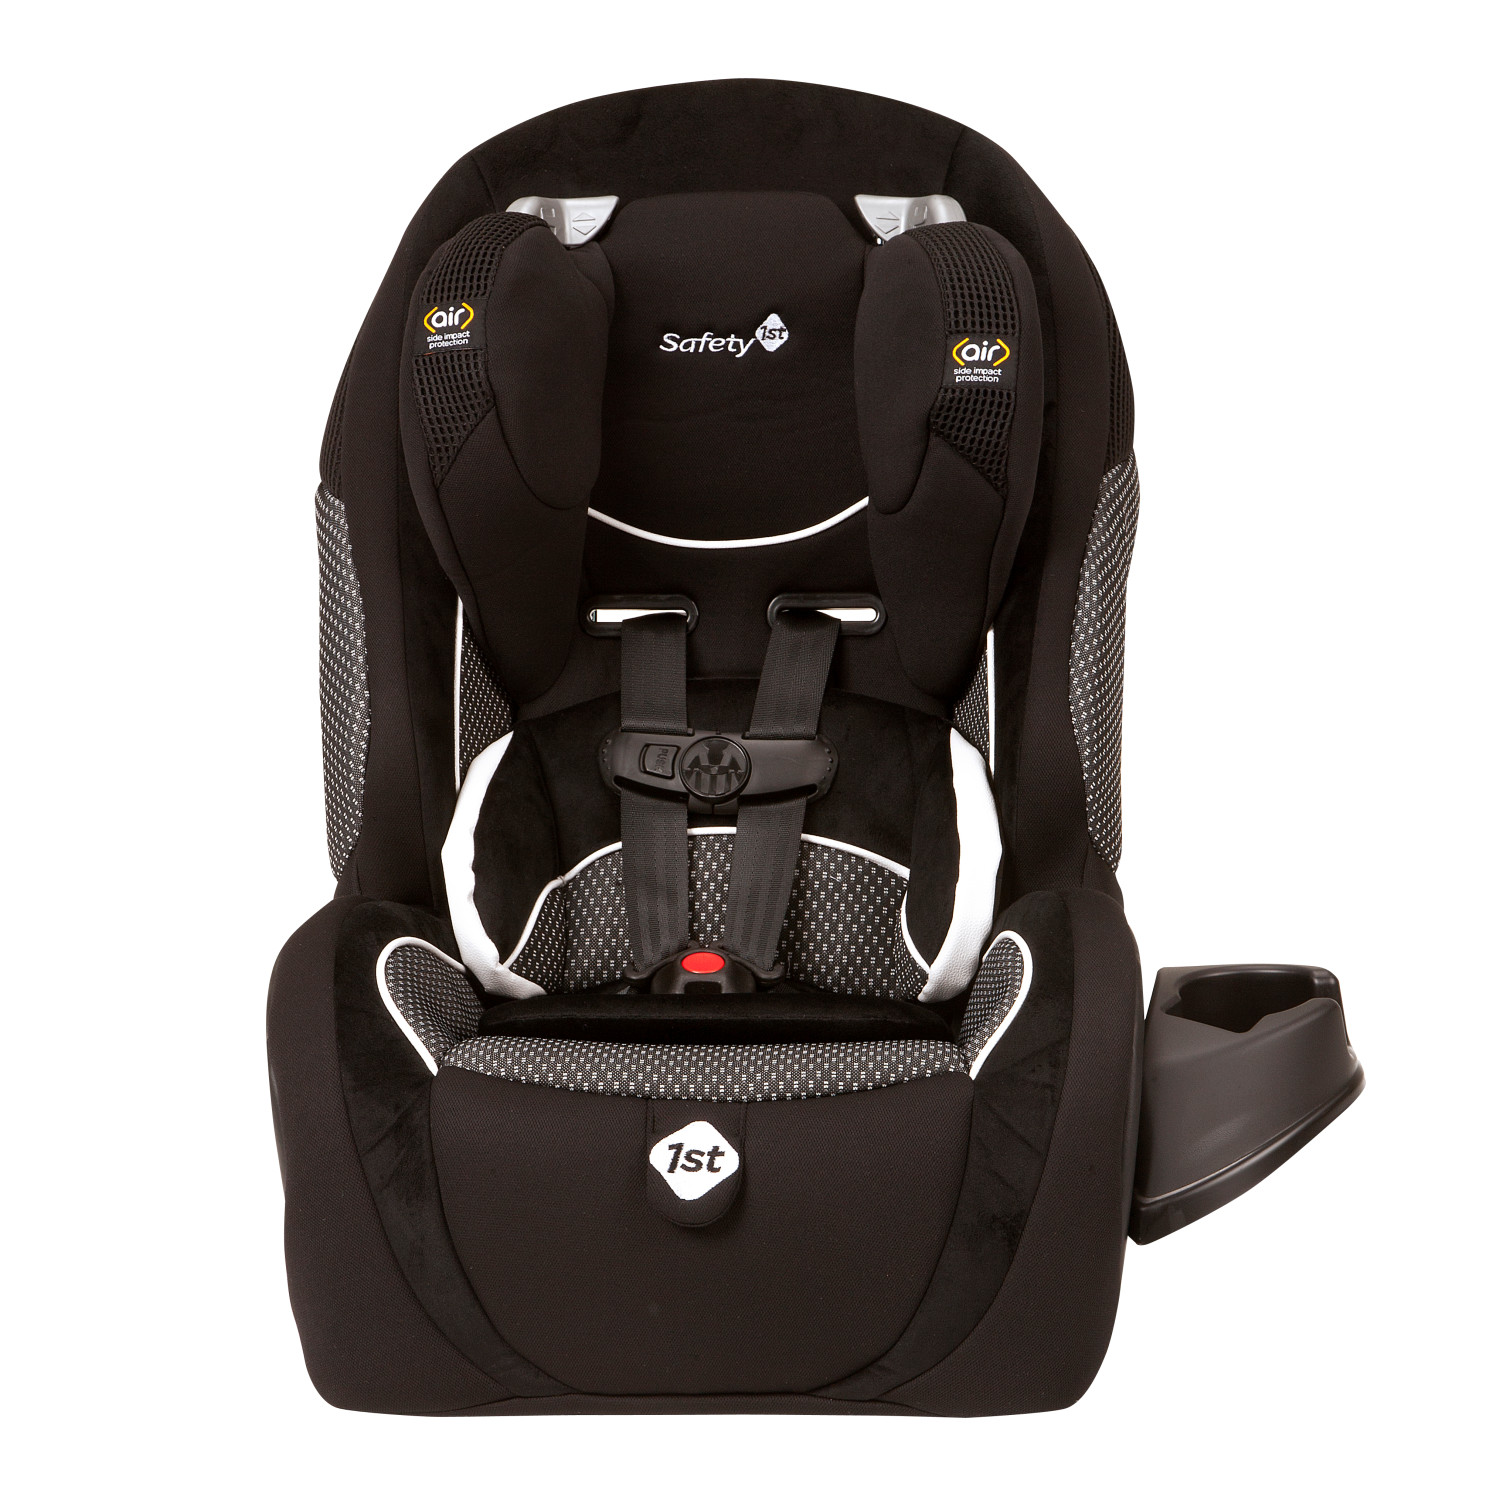 Safety-1st-Complete-Air-65-Convertible-Car-Seat thumbnail 2